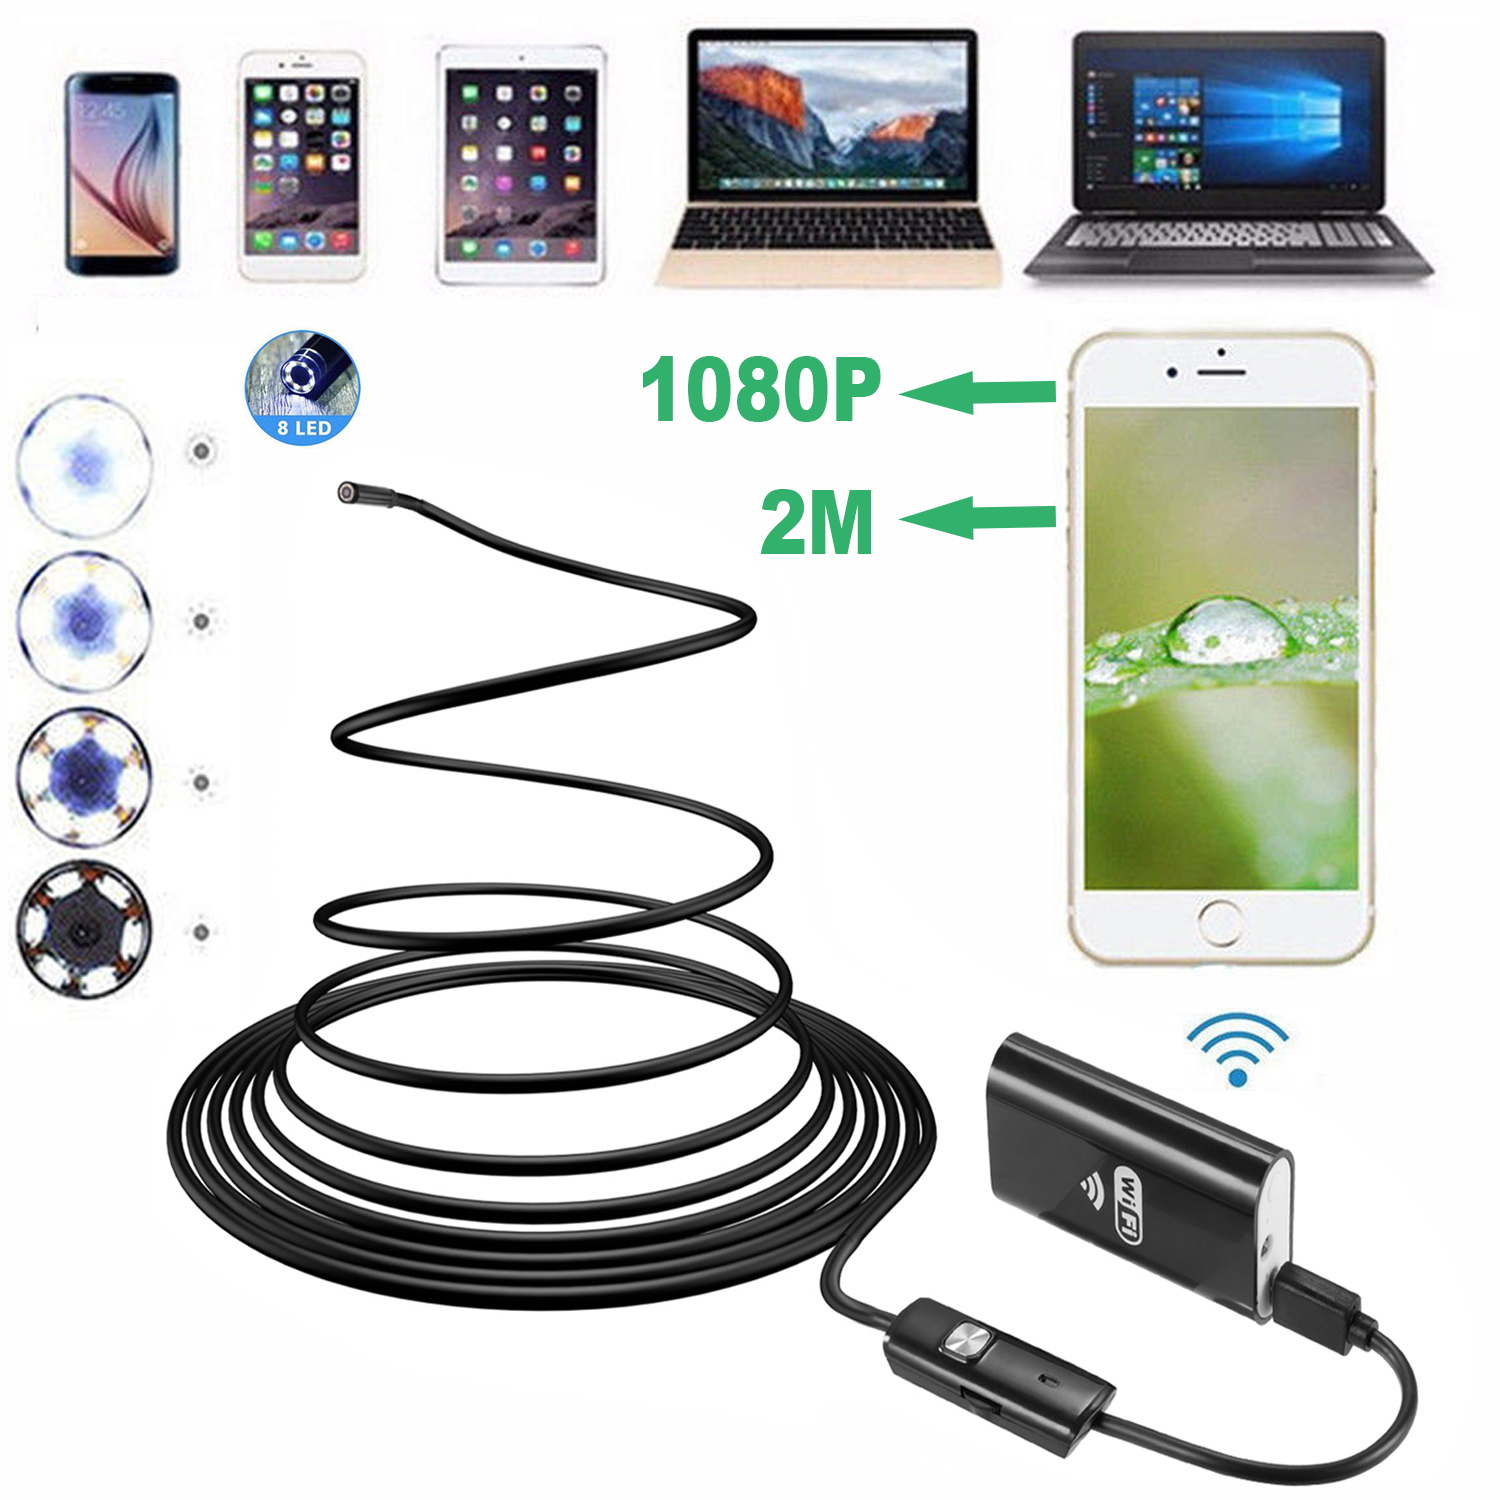 1080P WIFI Endoscope Camera 8mm HD Wireless Inspection Camera Endoscop 2M 3.5M 5M Flexible WIFI Endoscope Camera For Android IOS